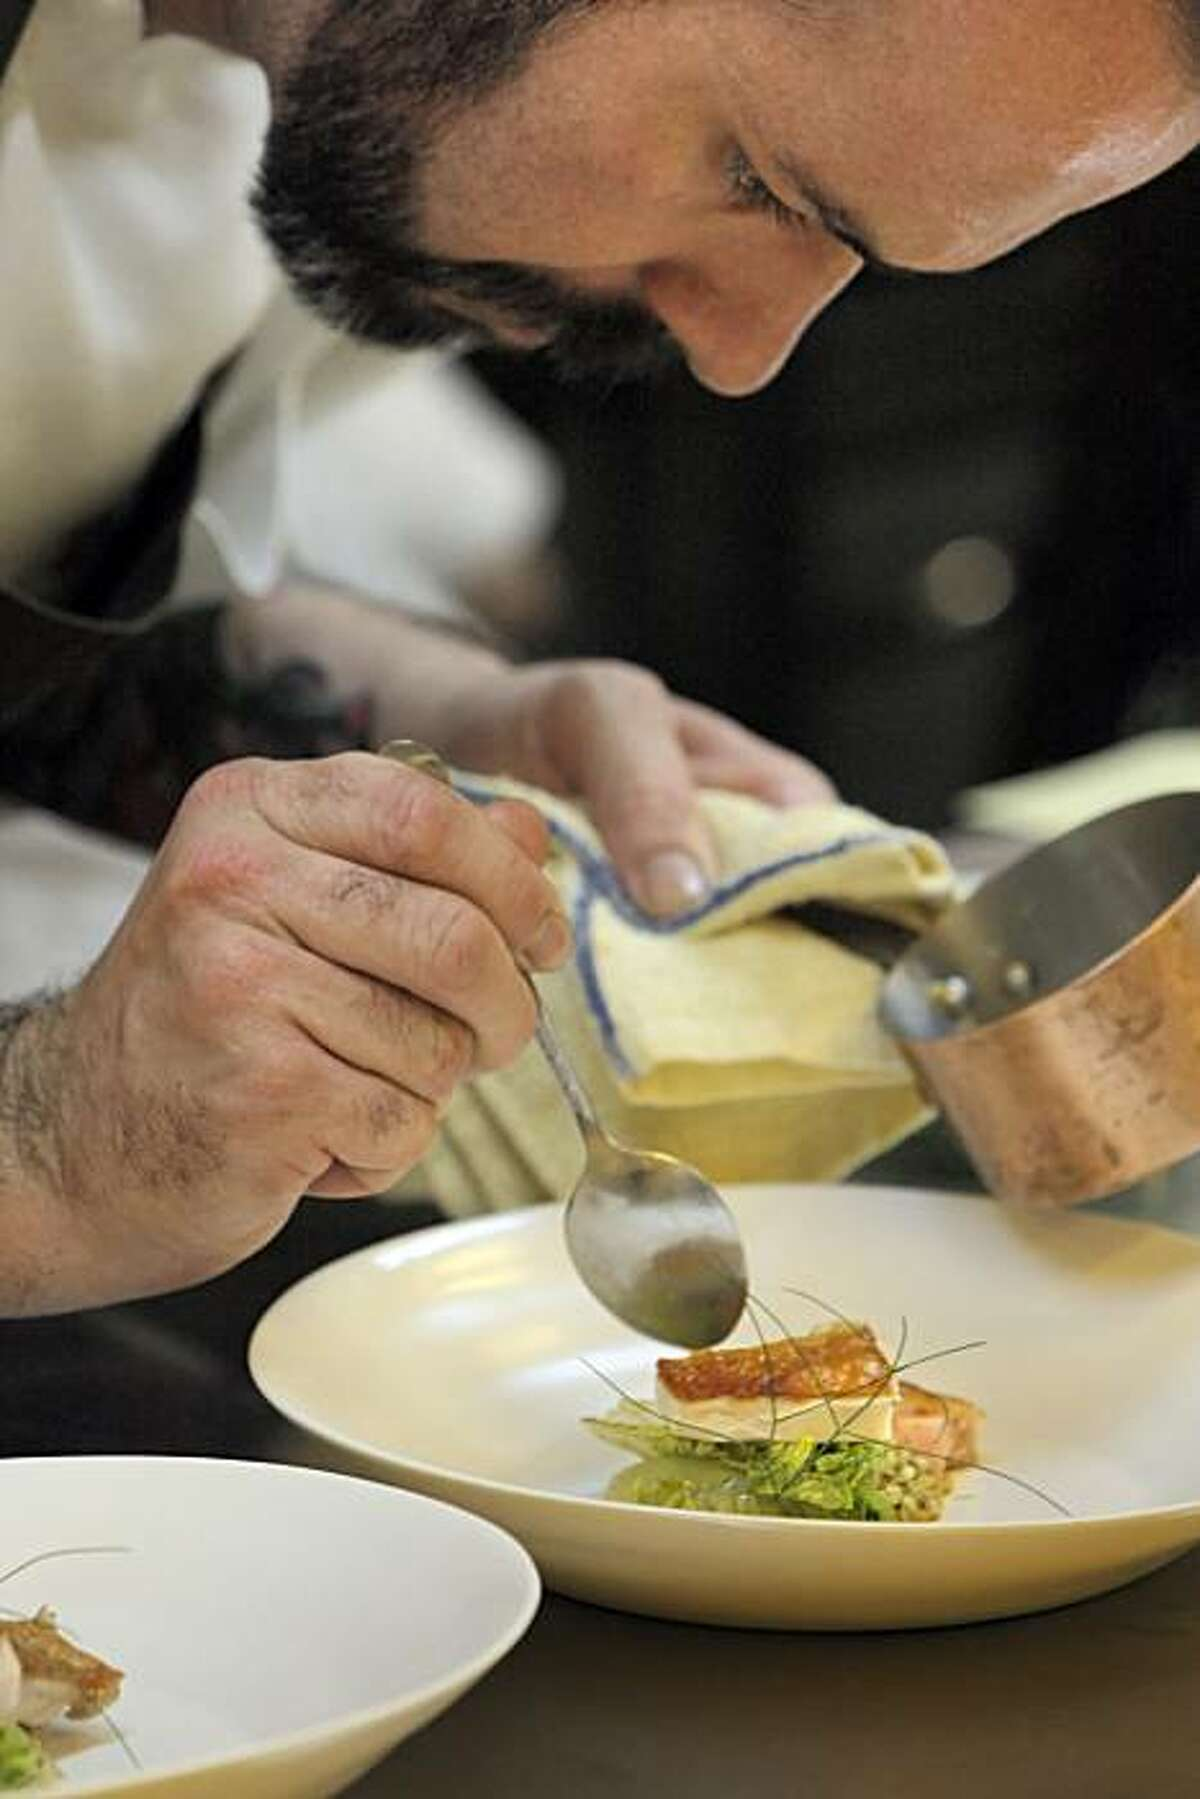 Sous chef Nick Ecker, finishes a dish before it is taken to a guest during dinner at Coi Restaurant in San Francisco, Calif., on Thursday, August 26, 2010. Executive Chef Daniel Patterson uses molecular gastronomy focusing on local food to create visually stunning, and delicious dishes